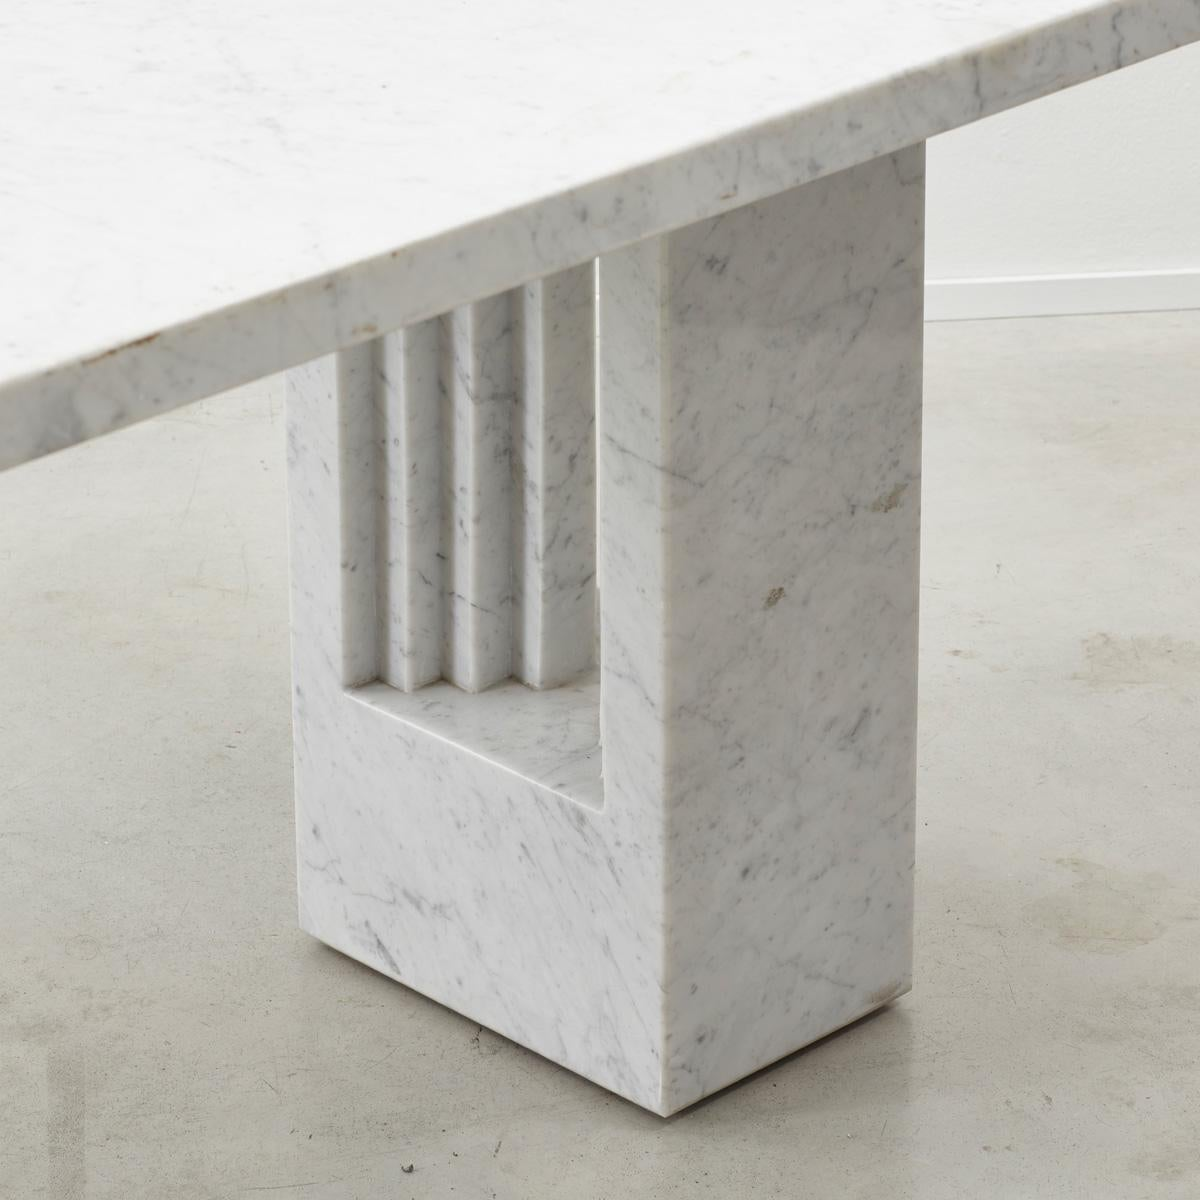 F110_Carlo_Scarpa_and_Marcel_Breuer_Delfi_table_5_master